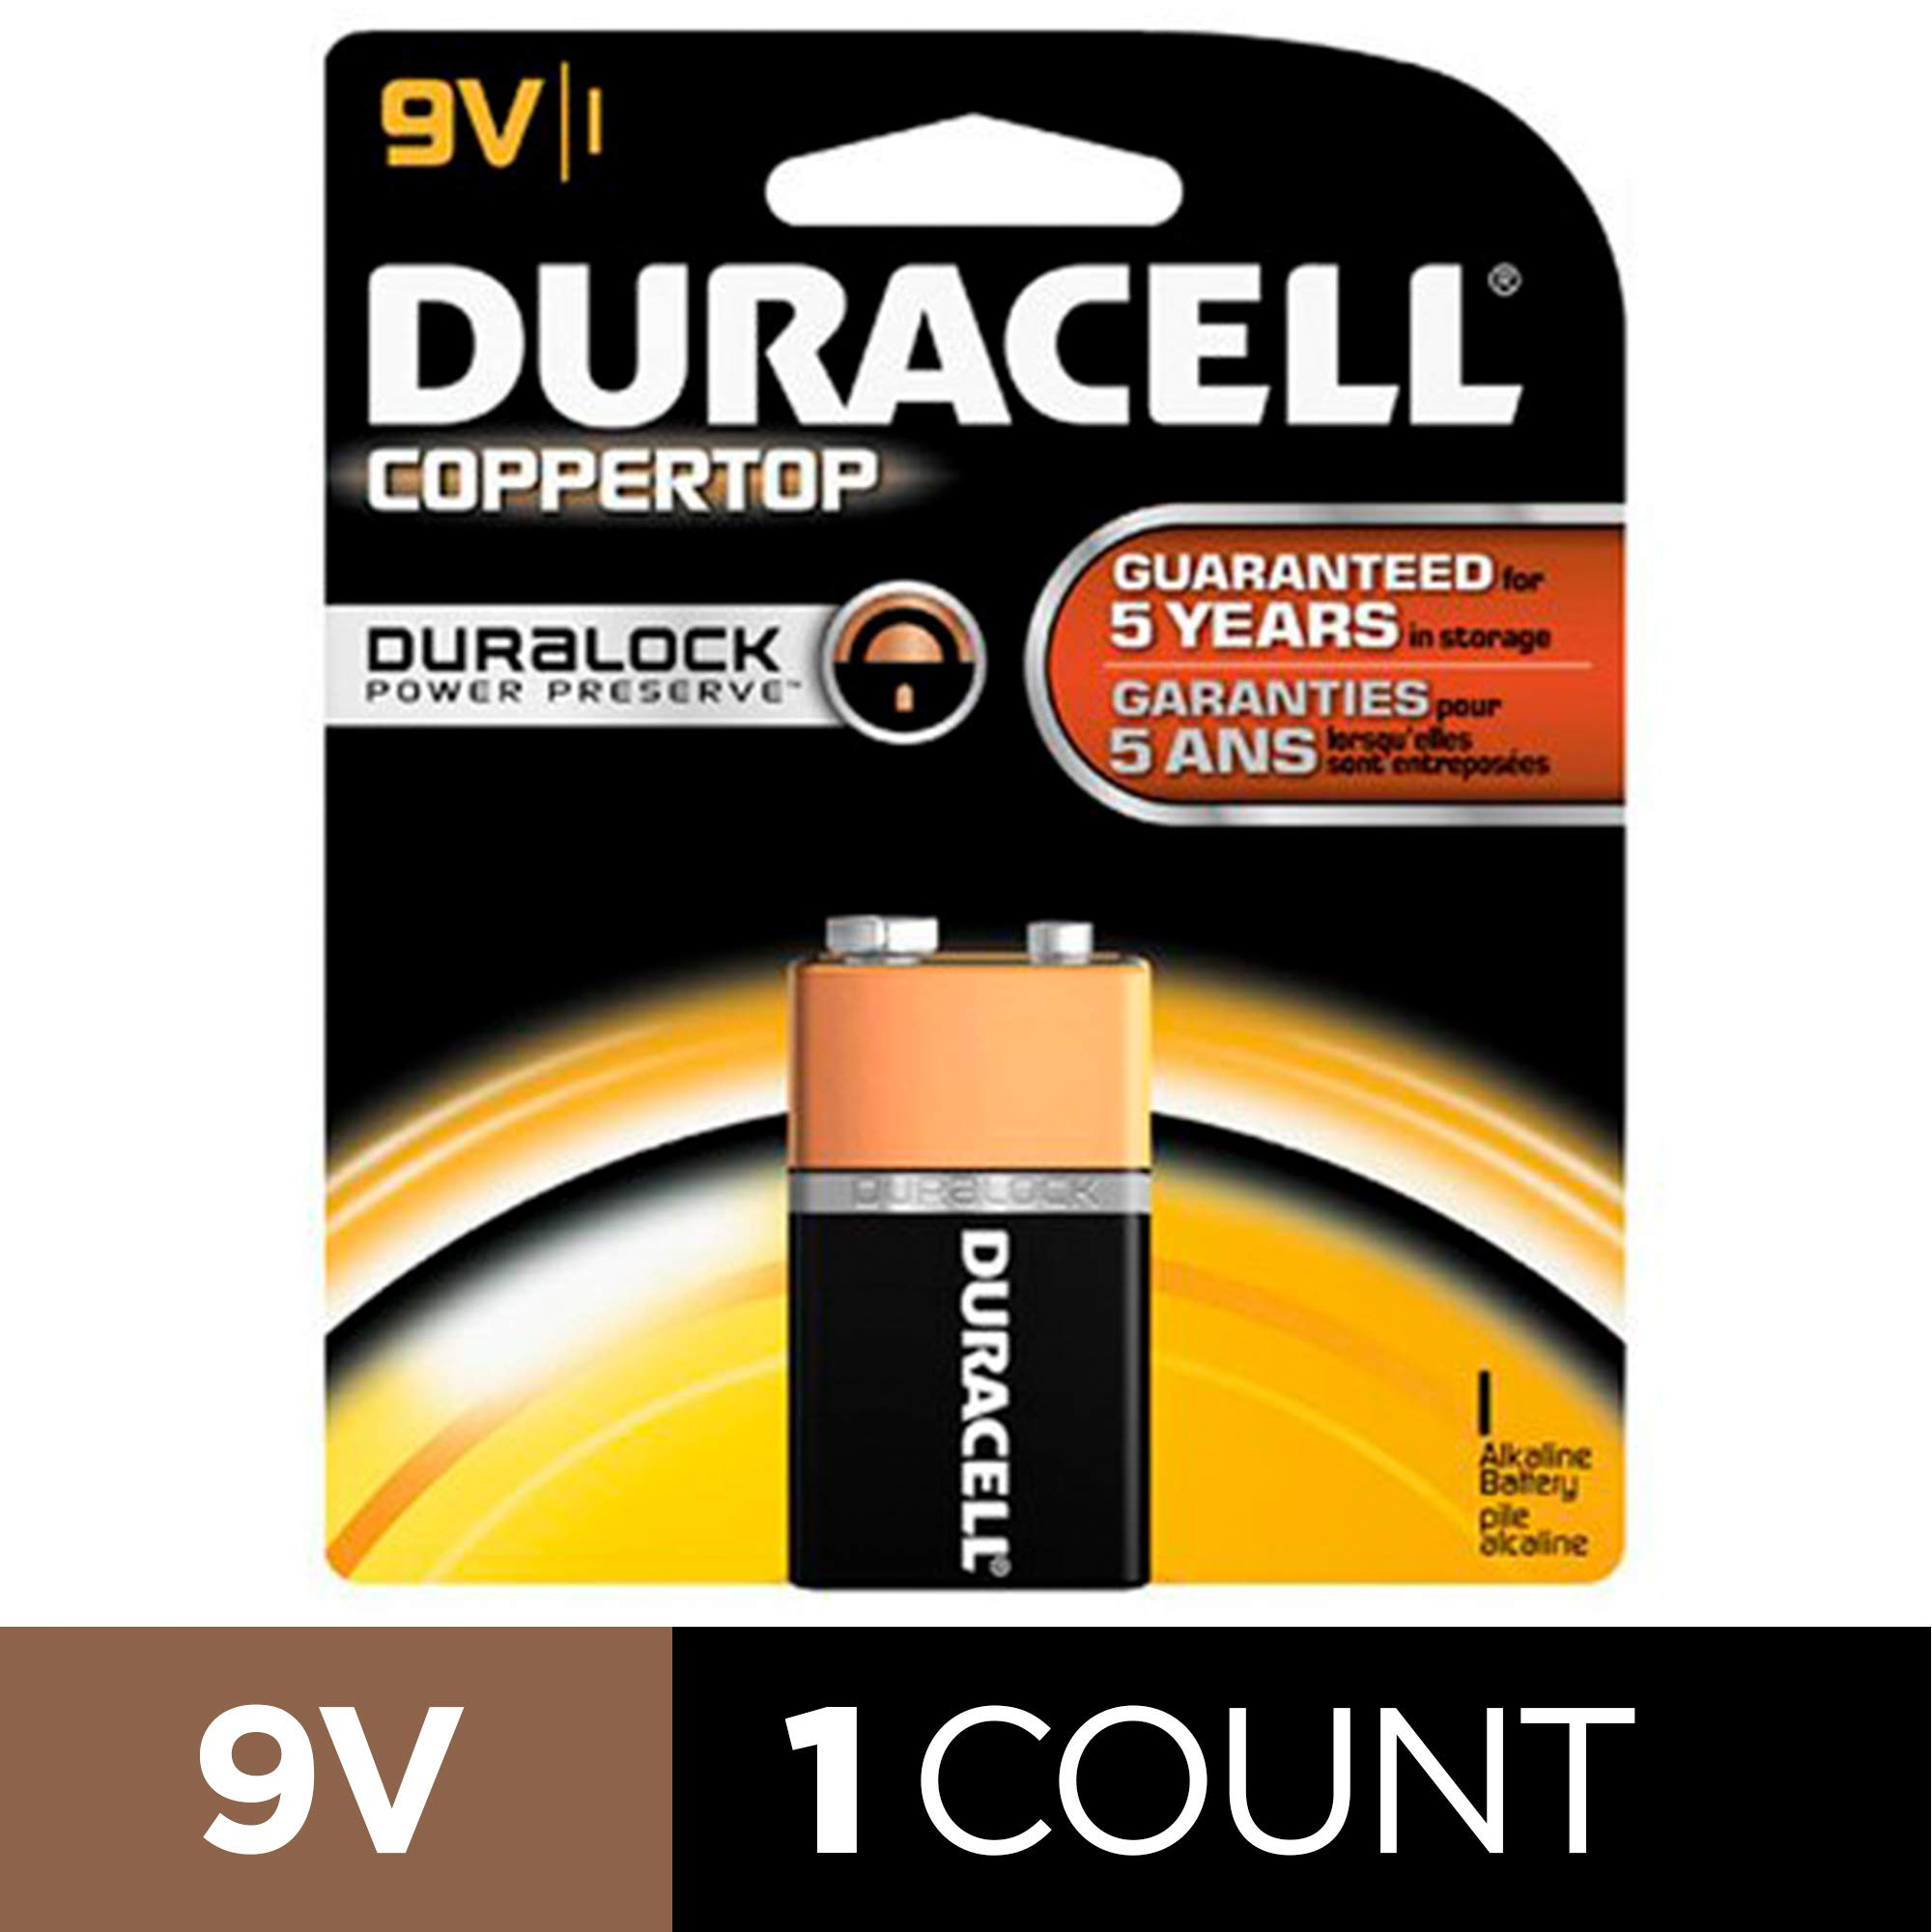 Duracell – CopperTop 9V Alkaline Batteries – long lasting, all-purpose 9 Volt battery for household and business – 2 count